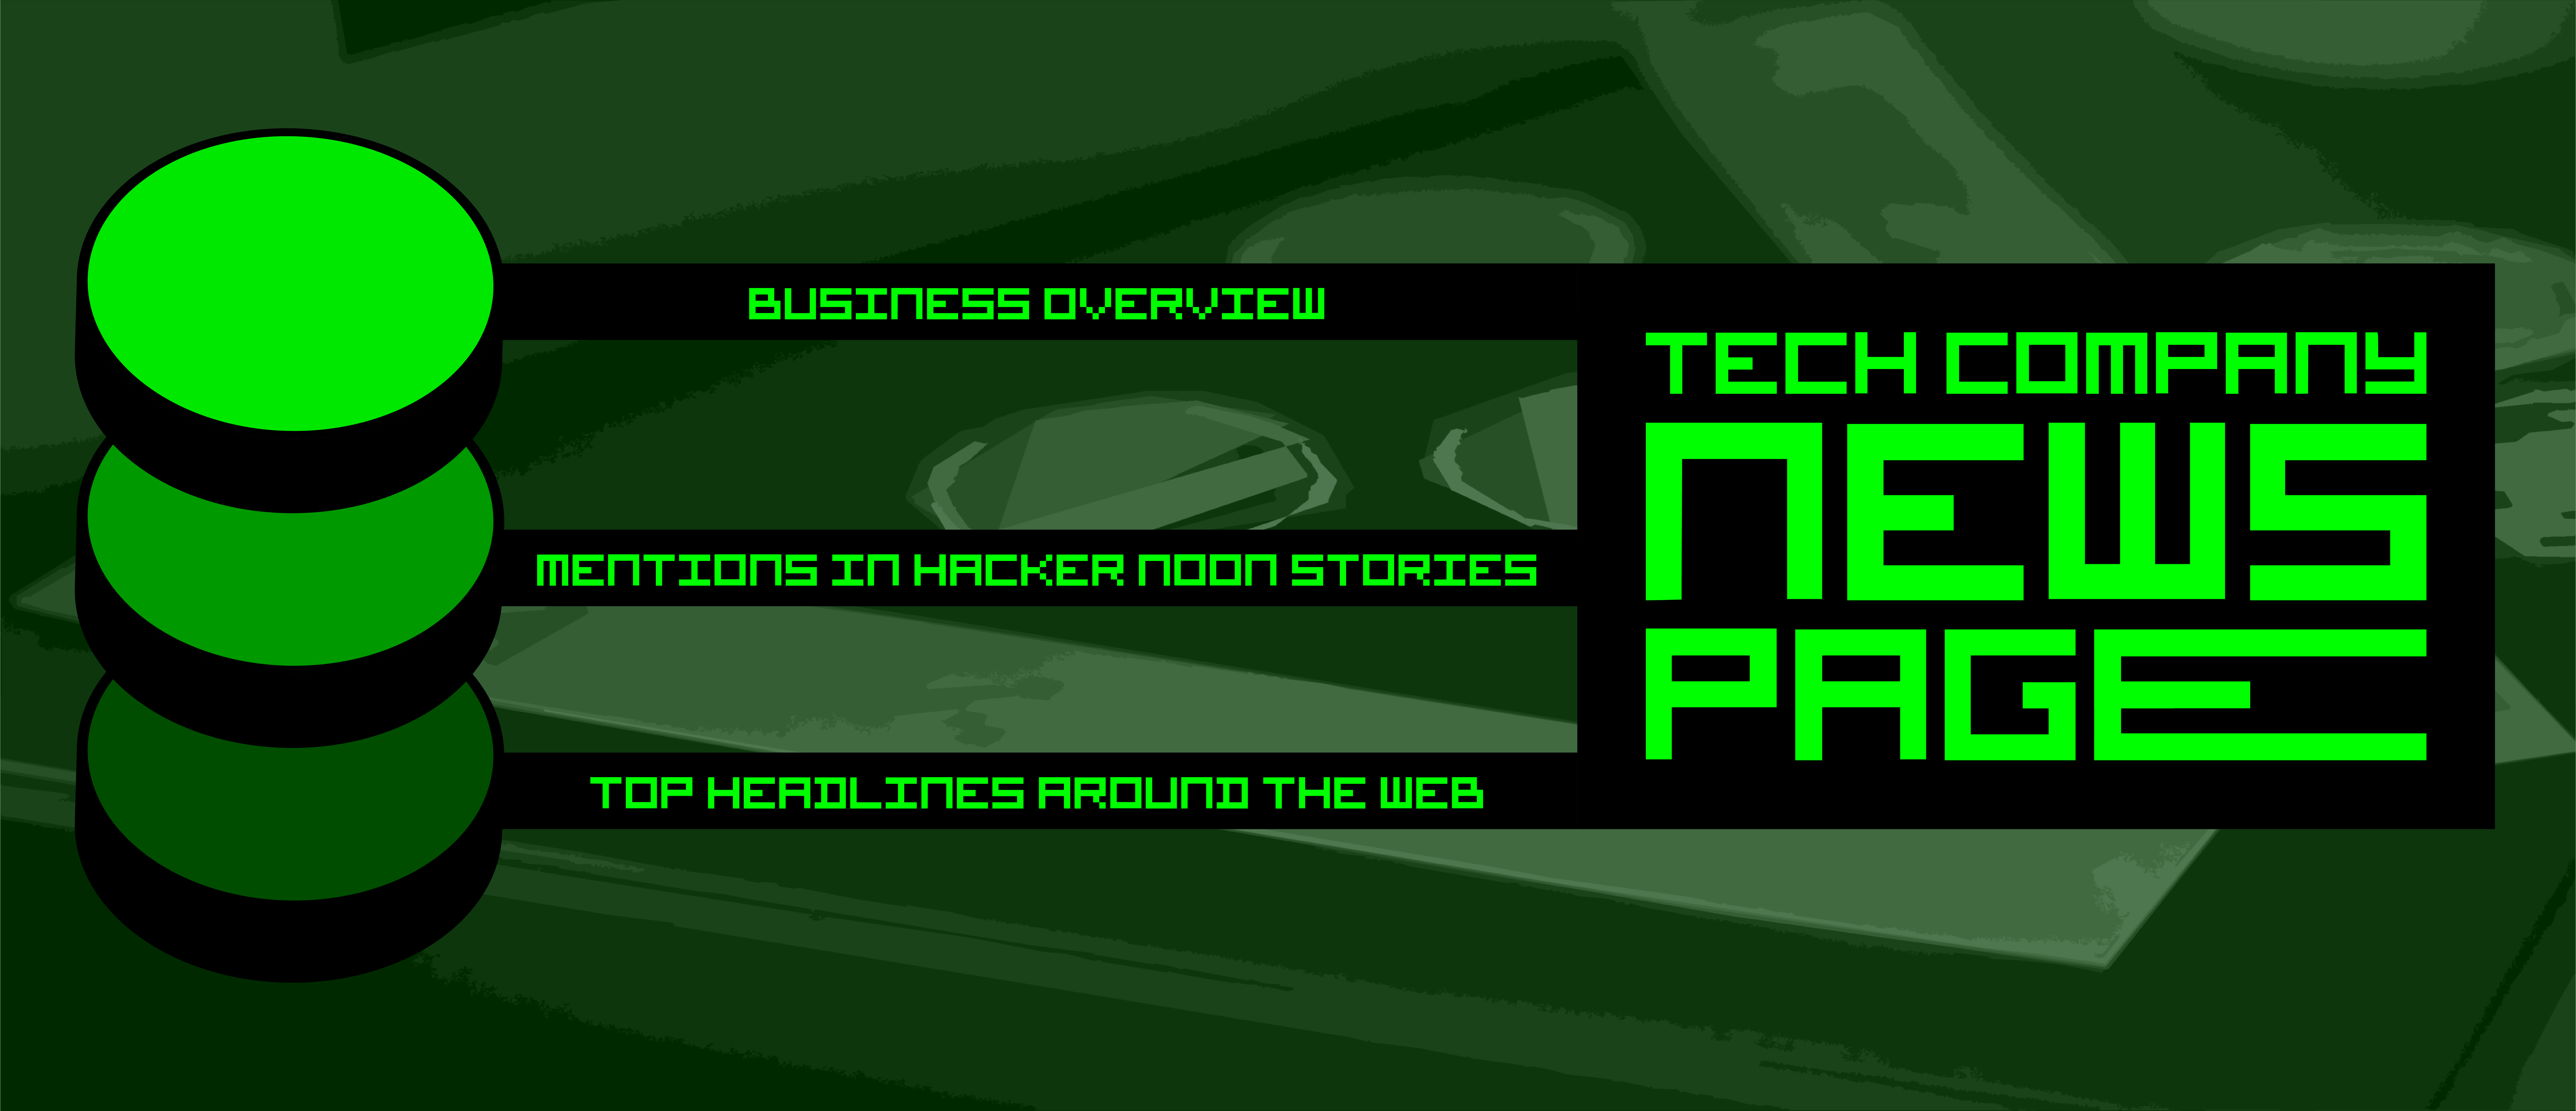 /about-tech-company-news-pages-by-hacker-noon-uwu34bh feature image